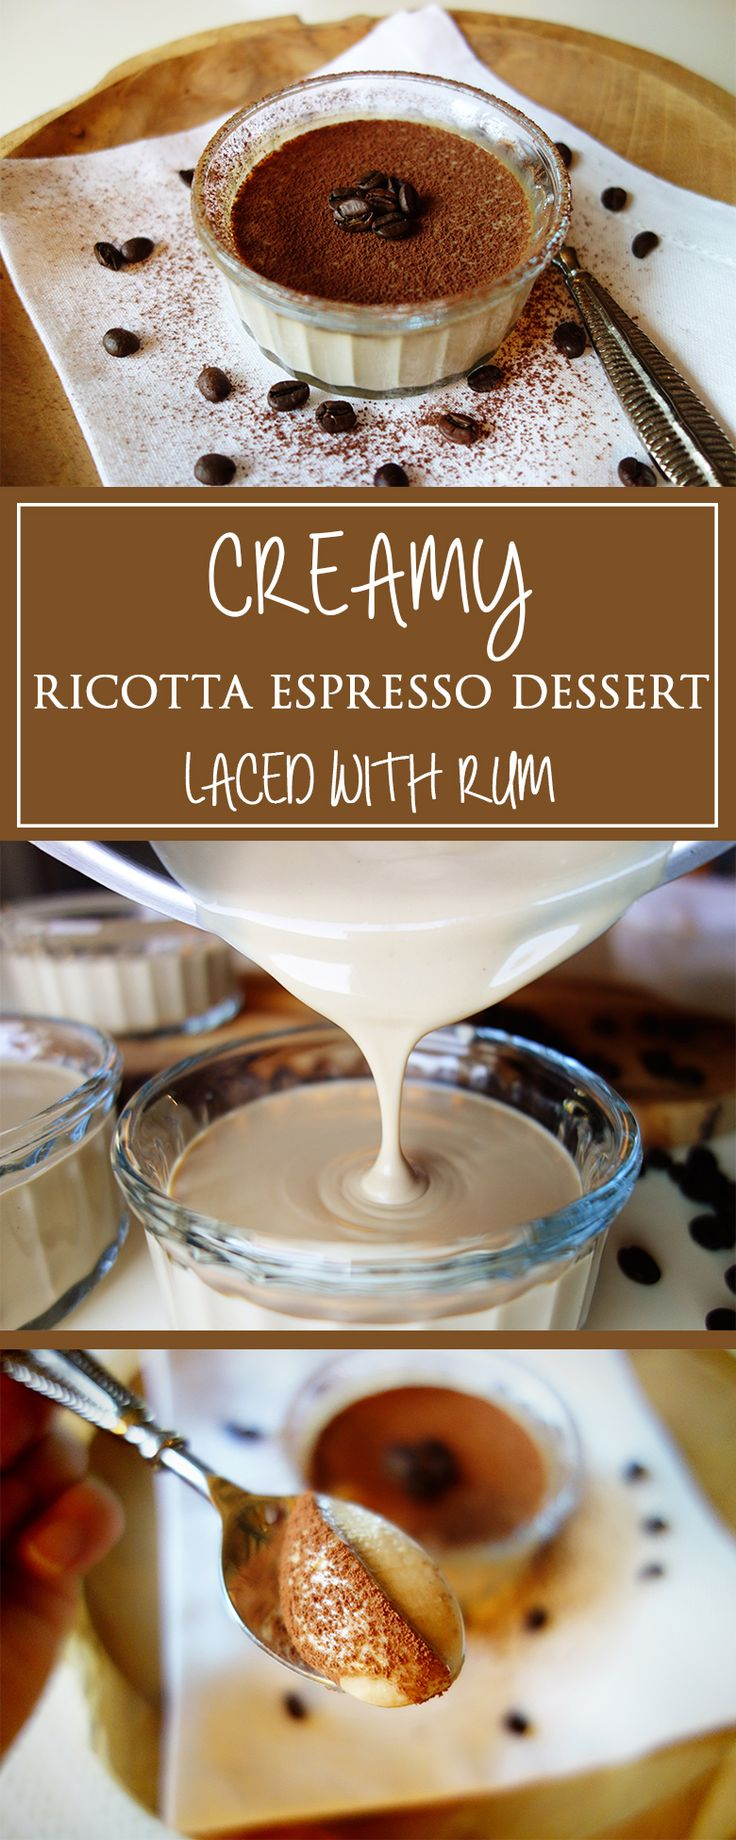 Creamy Ricotta Espresso Dessert laced with Rum - probably the most simple italian dolci-recipe there is! Sweet & irresisably tasty with that little twist!  | cucina-con-amore.com